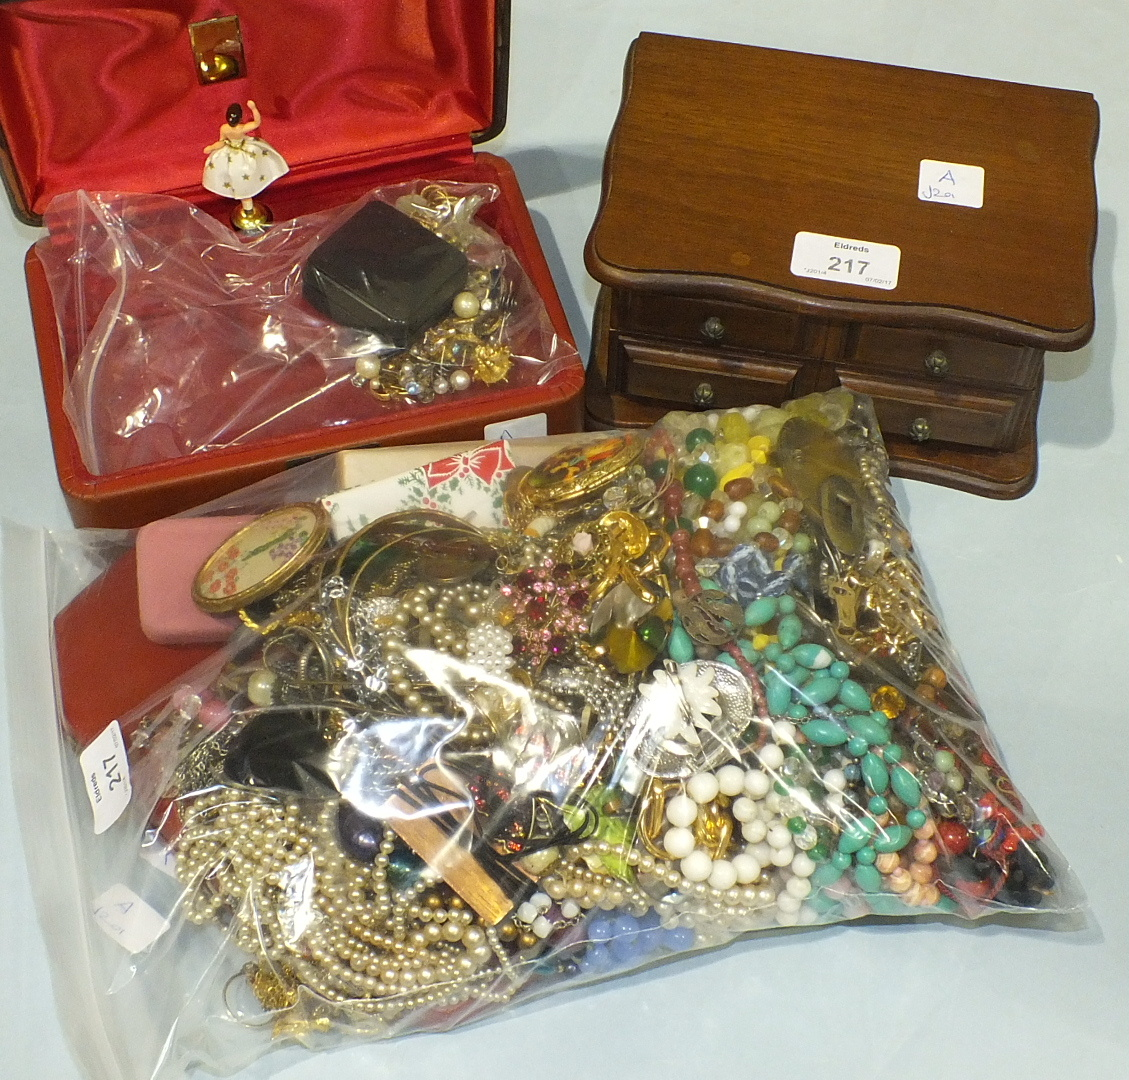 Lot 217 - A large quantity of costume jewellery and two jewellery boxes.